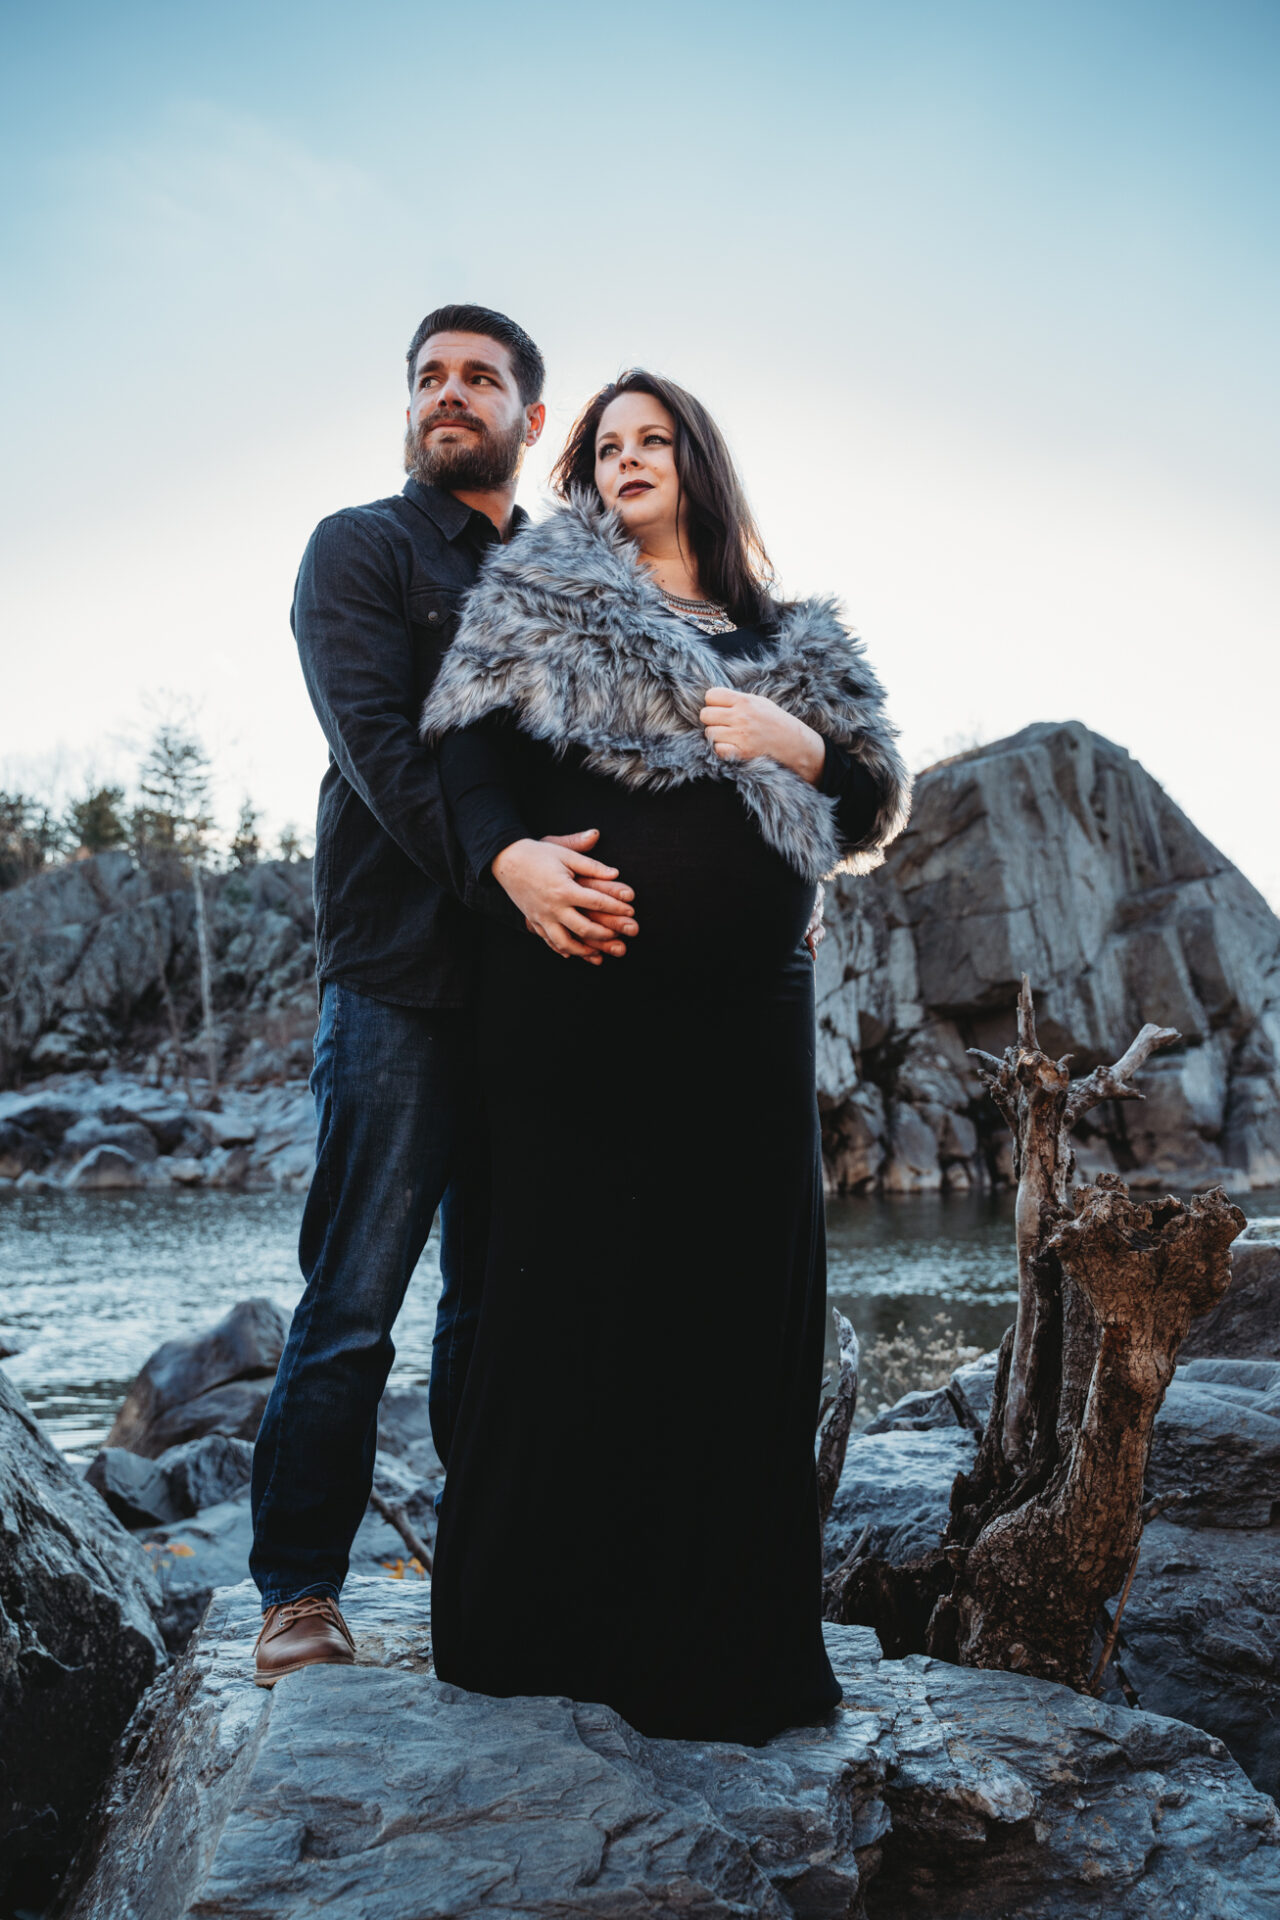 northern virginia creative maternity photo with unique background location